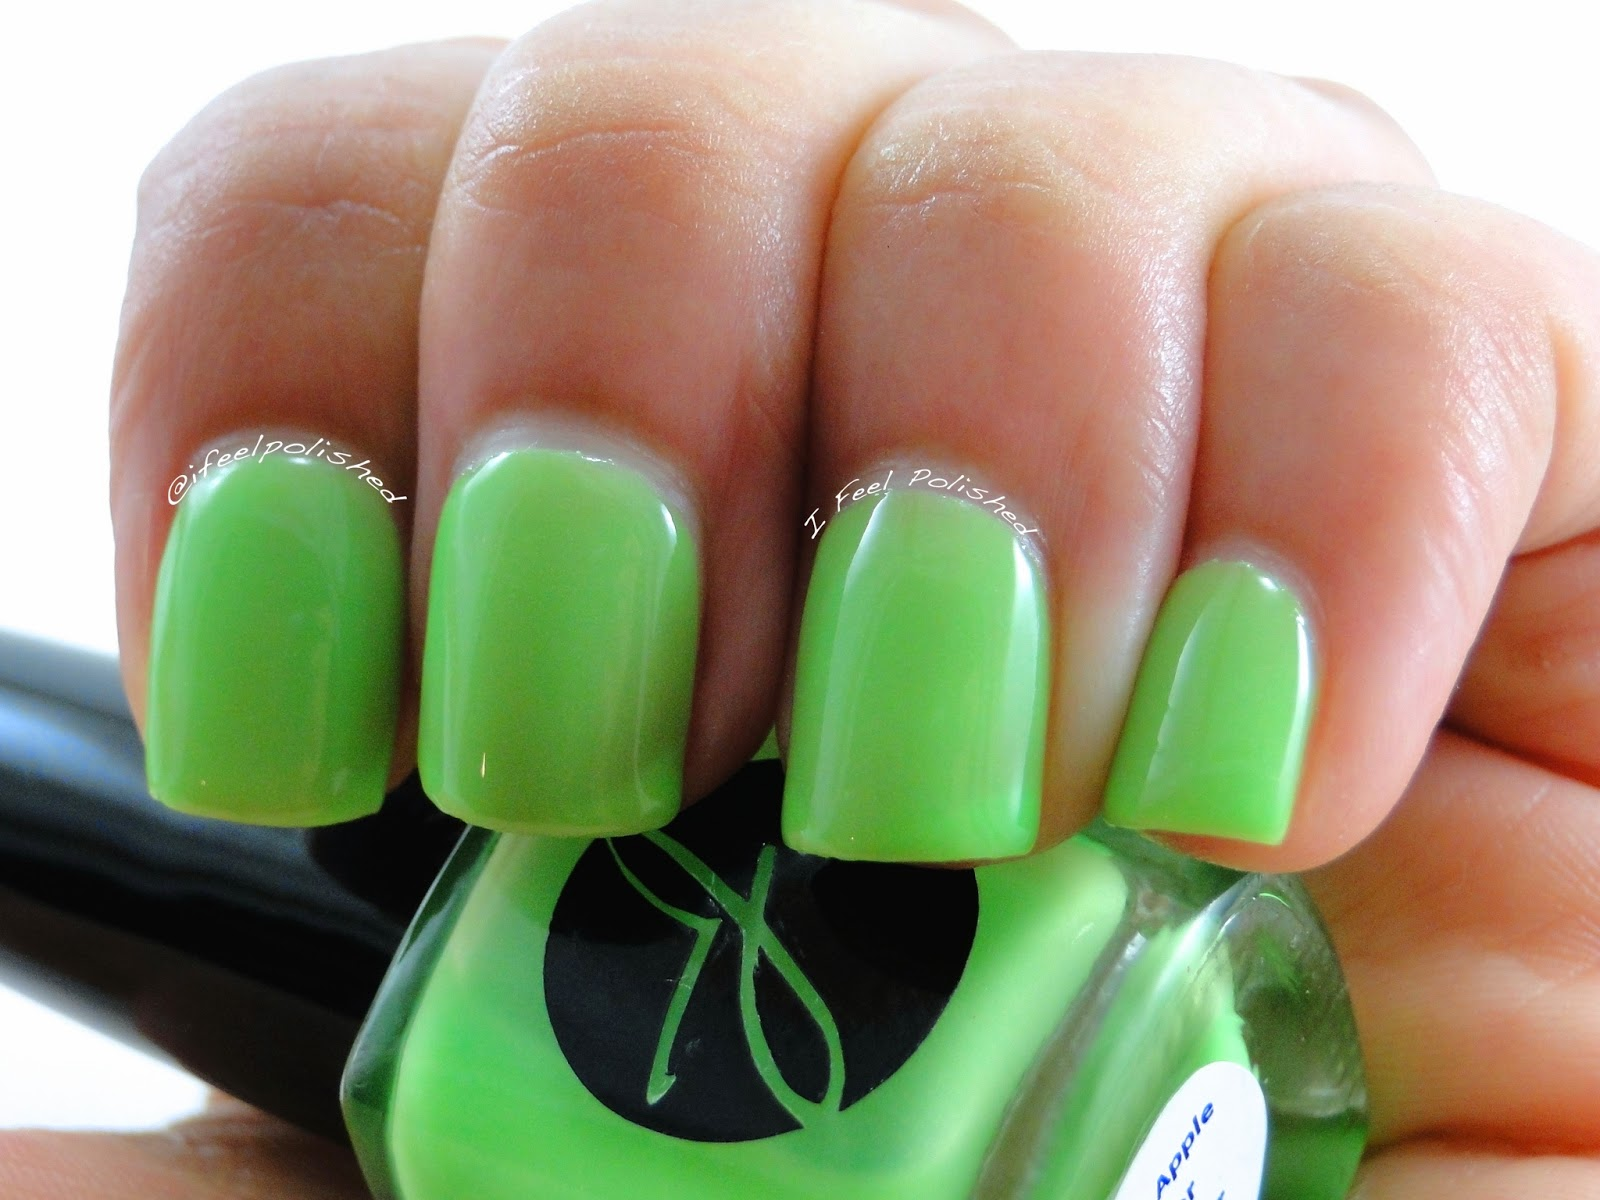 Jior Couture Green Apple Ginger Refresher